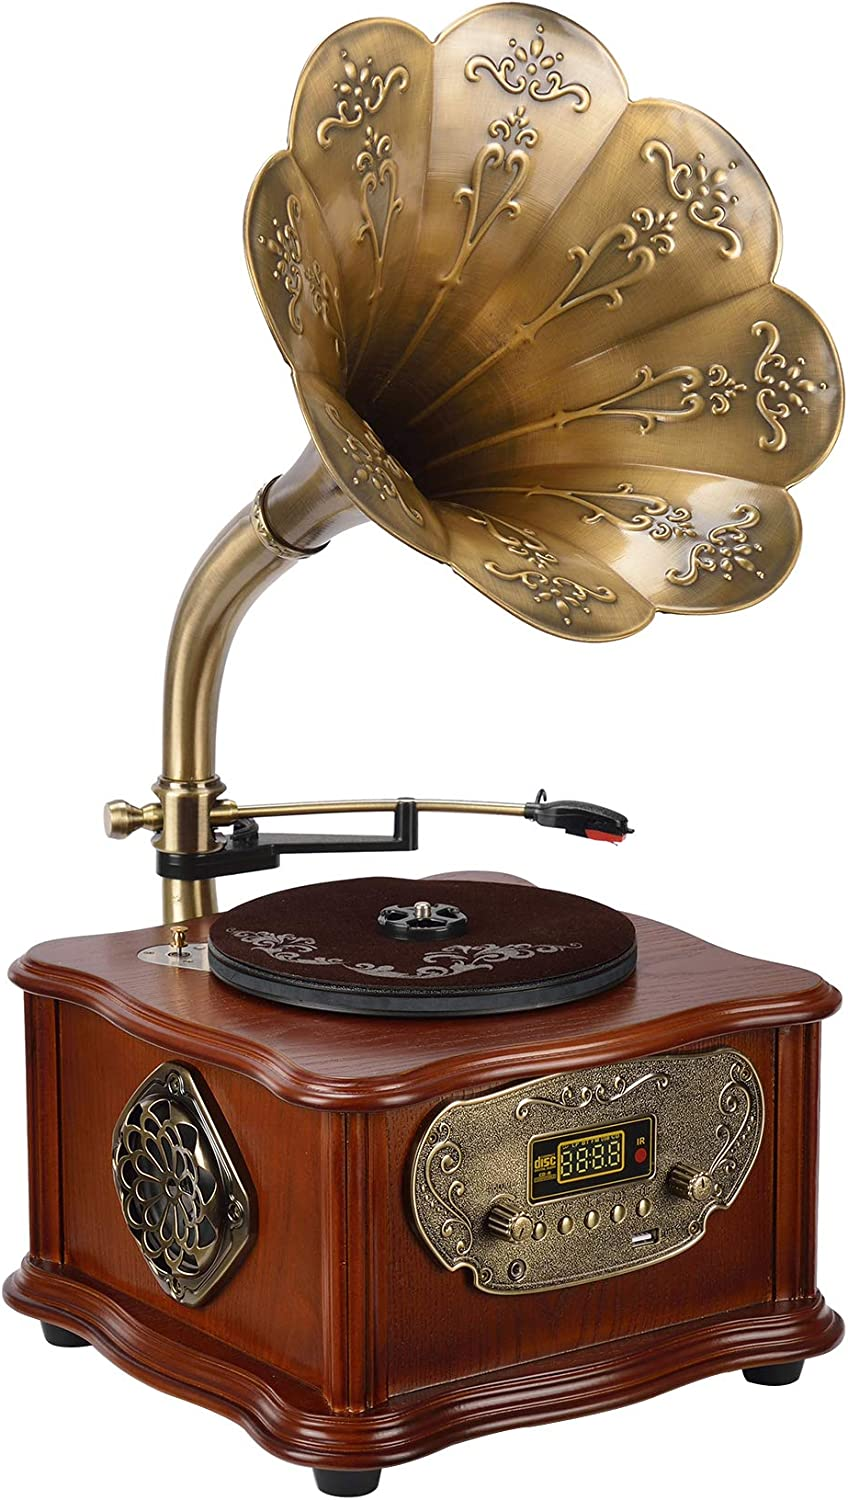 Wooden Gramophone Phonograph Turntable Vinyl Record Player Stereo Speakers System Control 33/45 RPM FM AUX USB Ouput Bluetooth 4.2